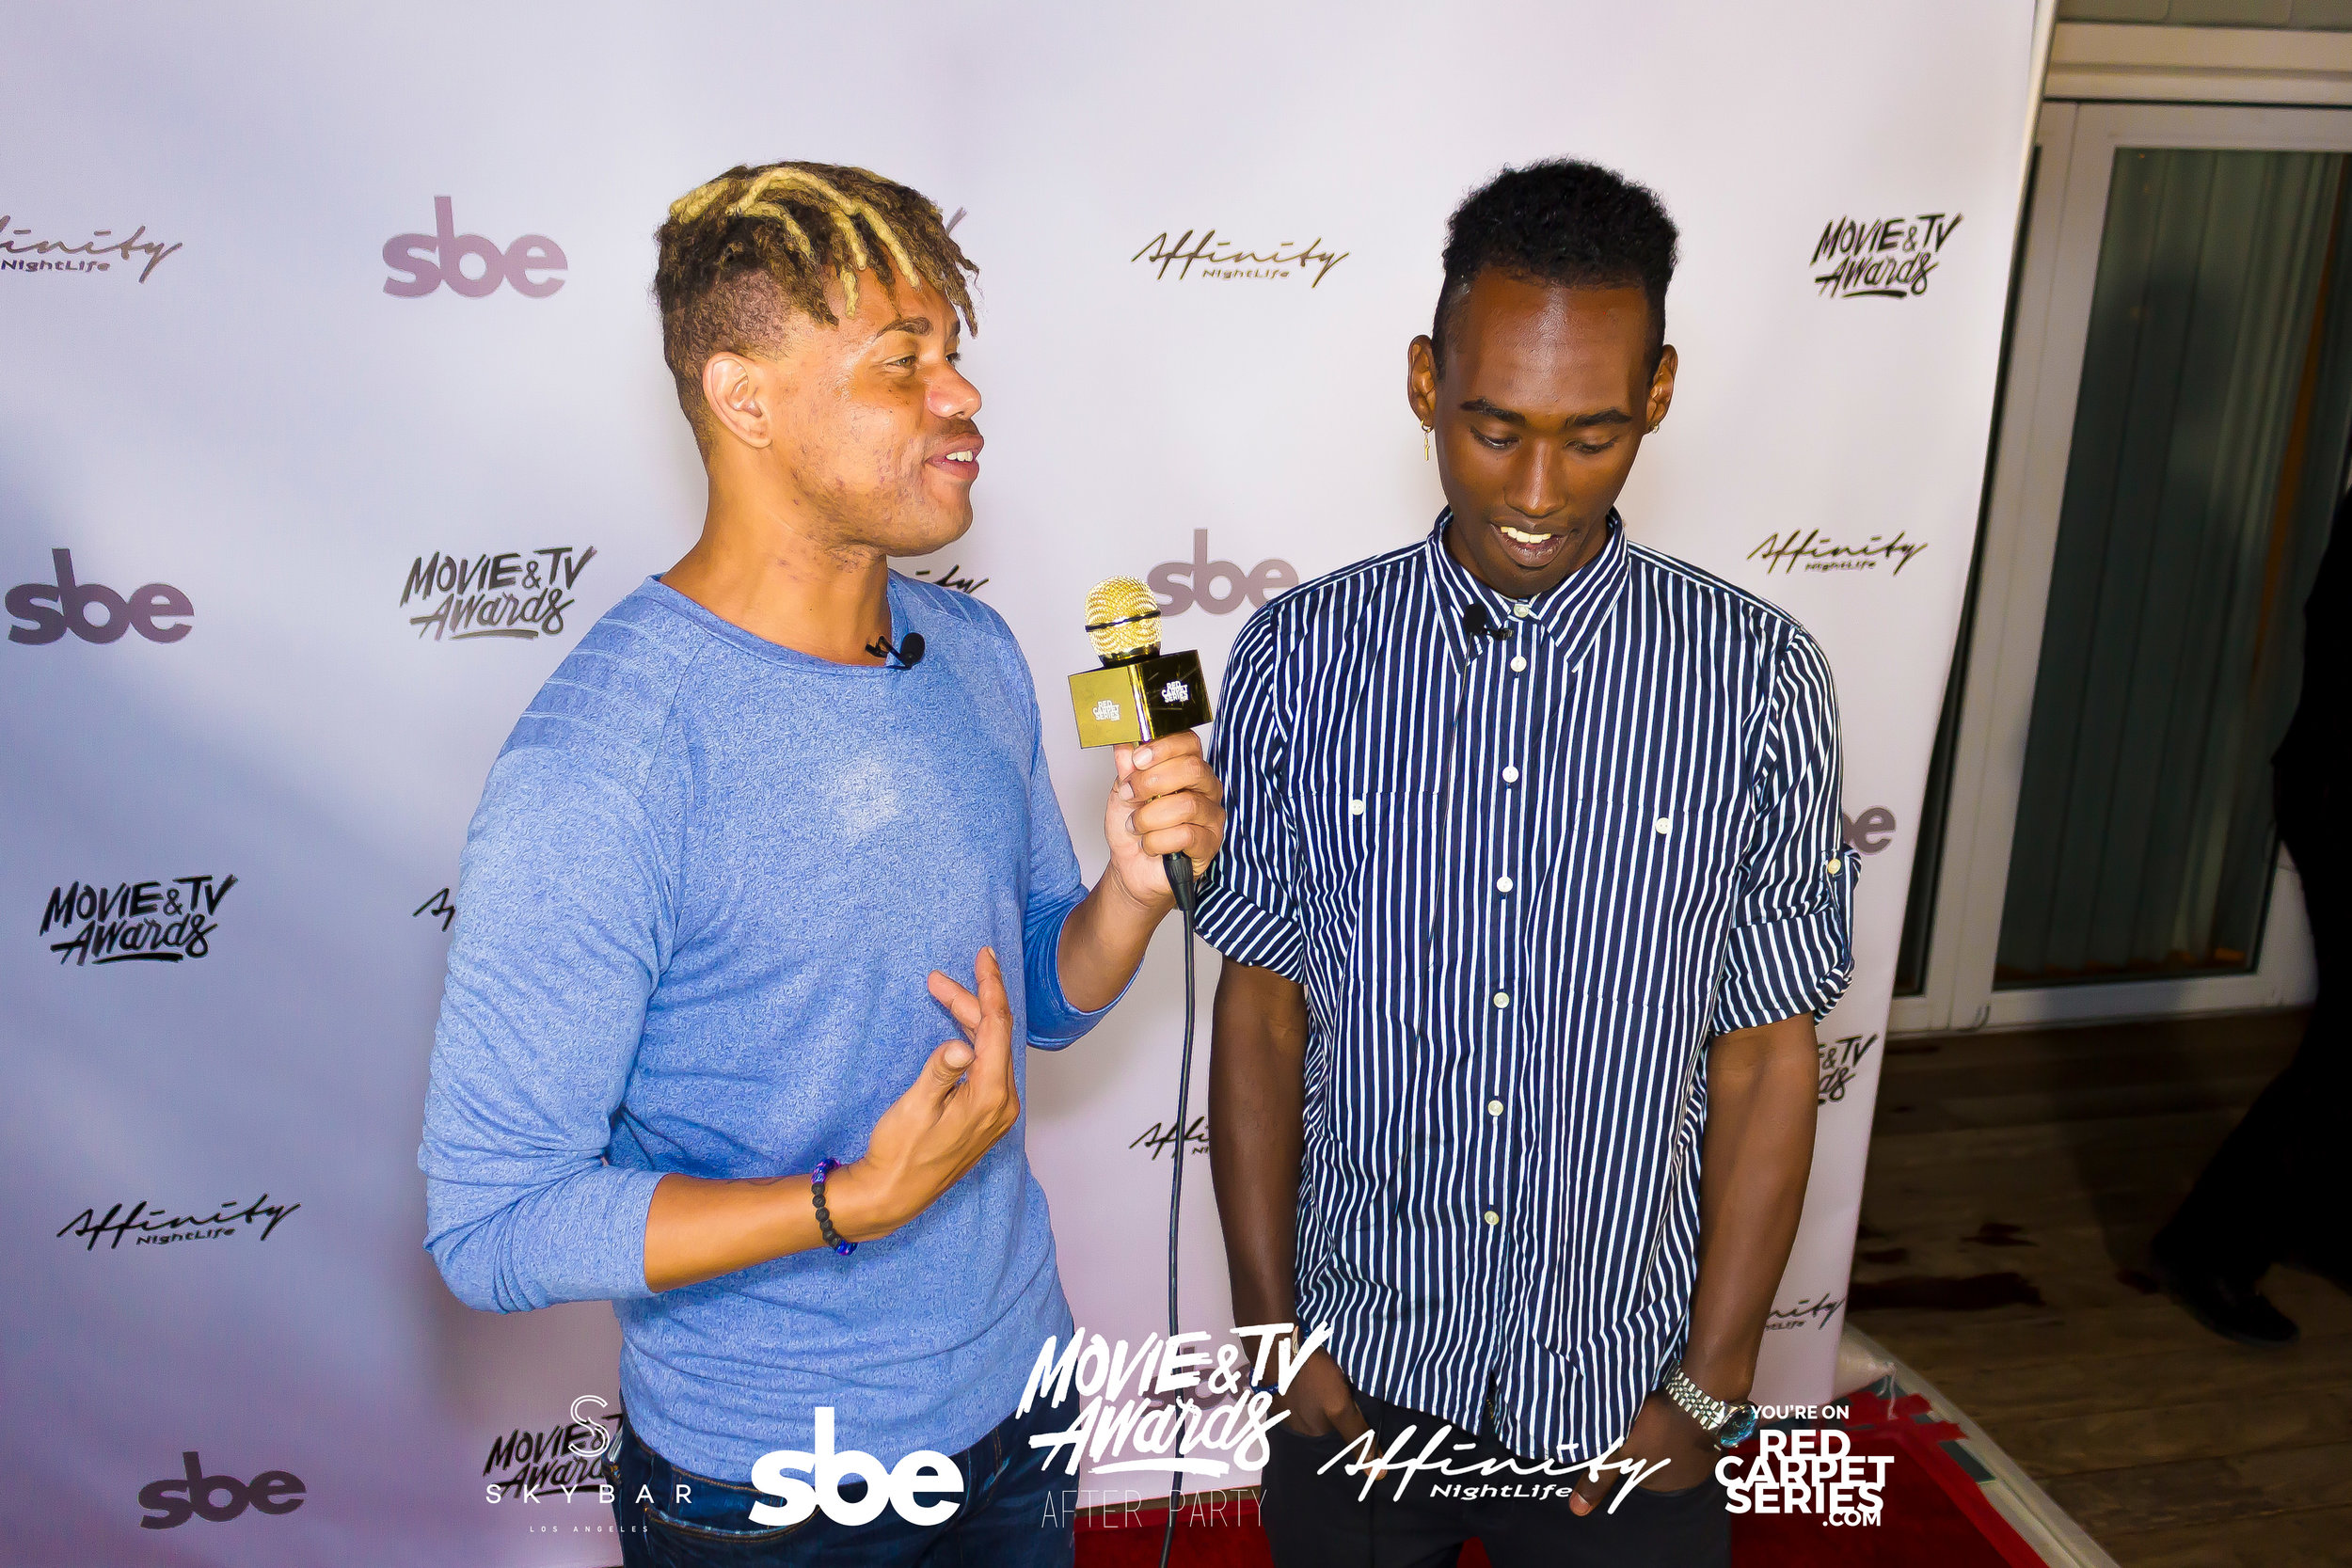 Affinity Nightlife MTV Movie & TV Awards After Party - Skybar at Mondrian - 06-15-19 - Vol. 1_125.jpg